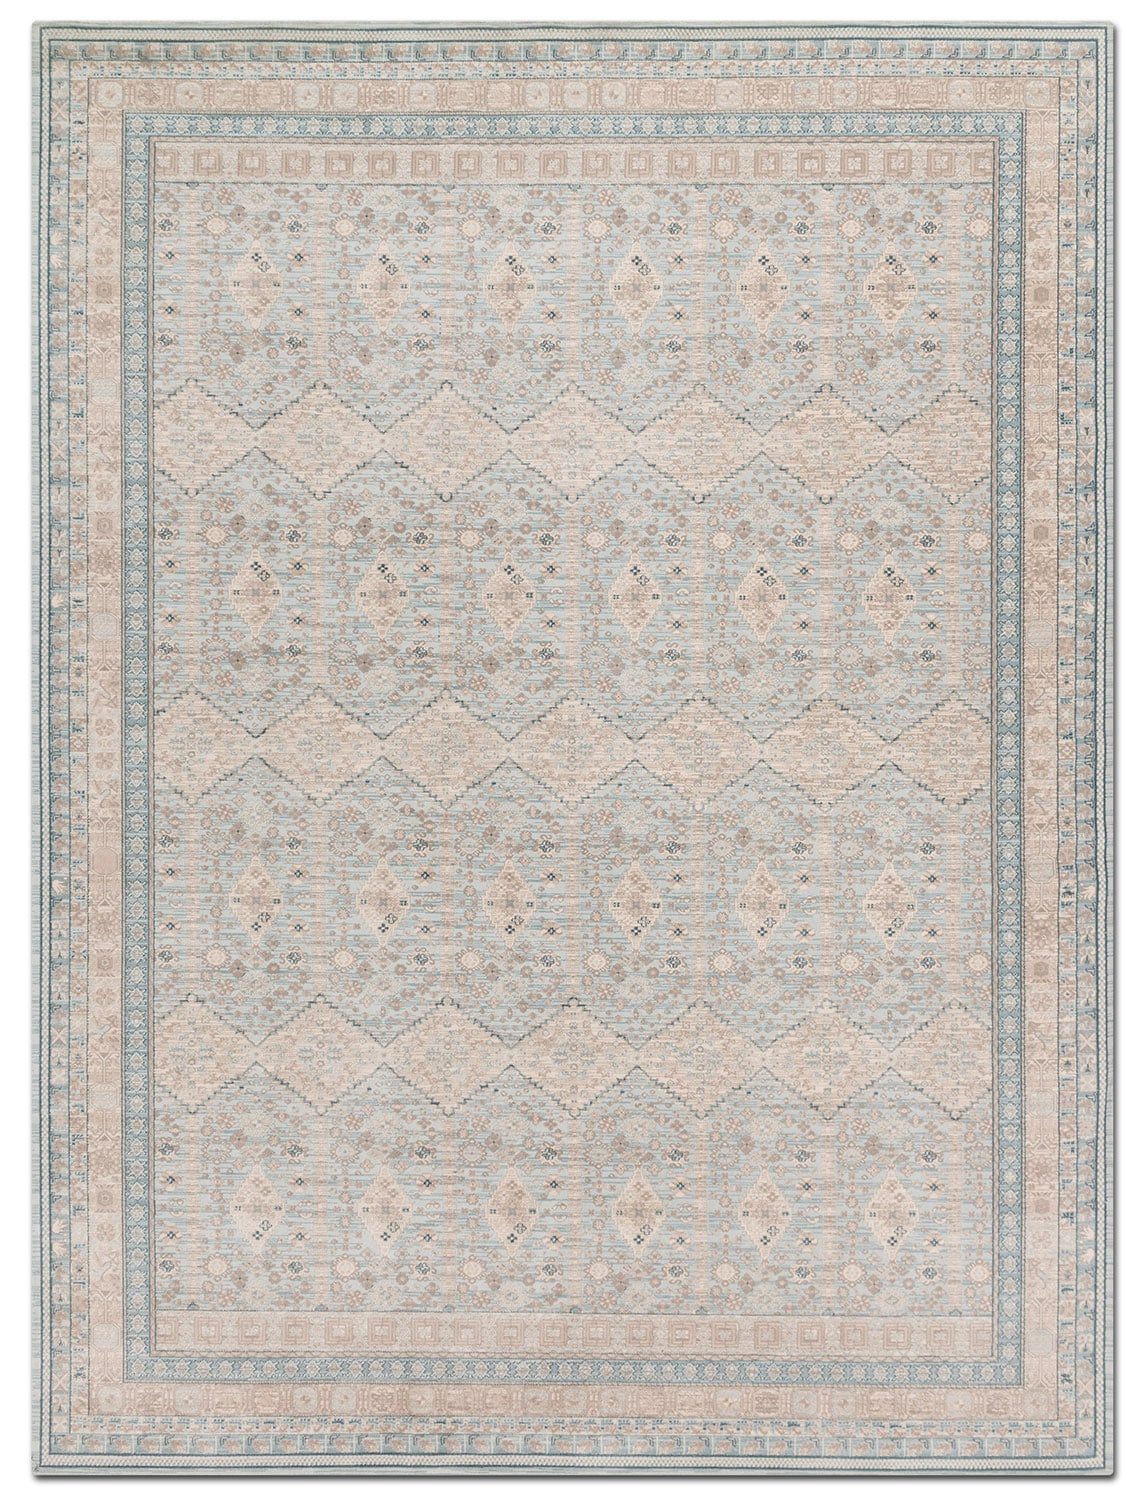 Rugs - Ella Rose 12' x 15' Rug - Mist and Stone